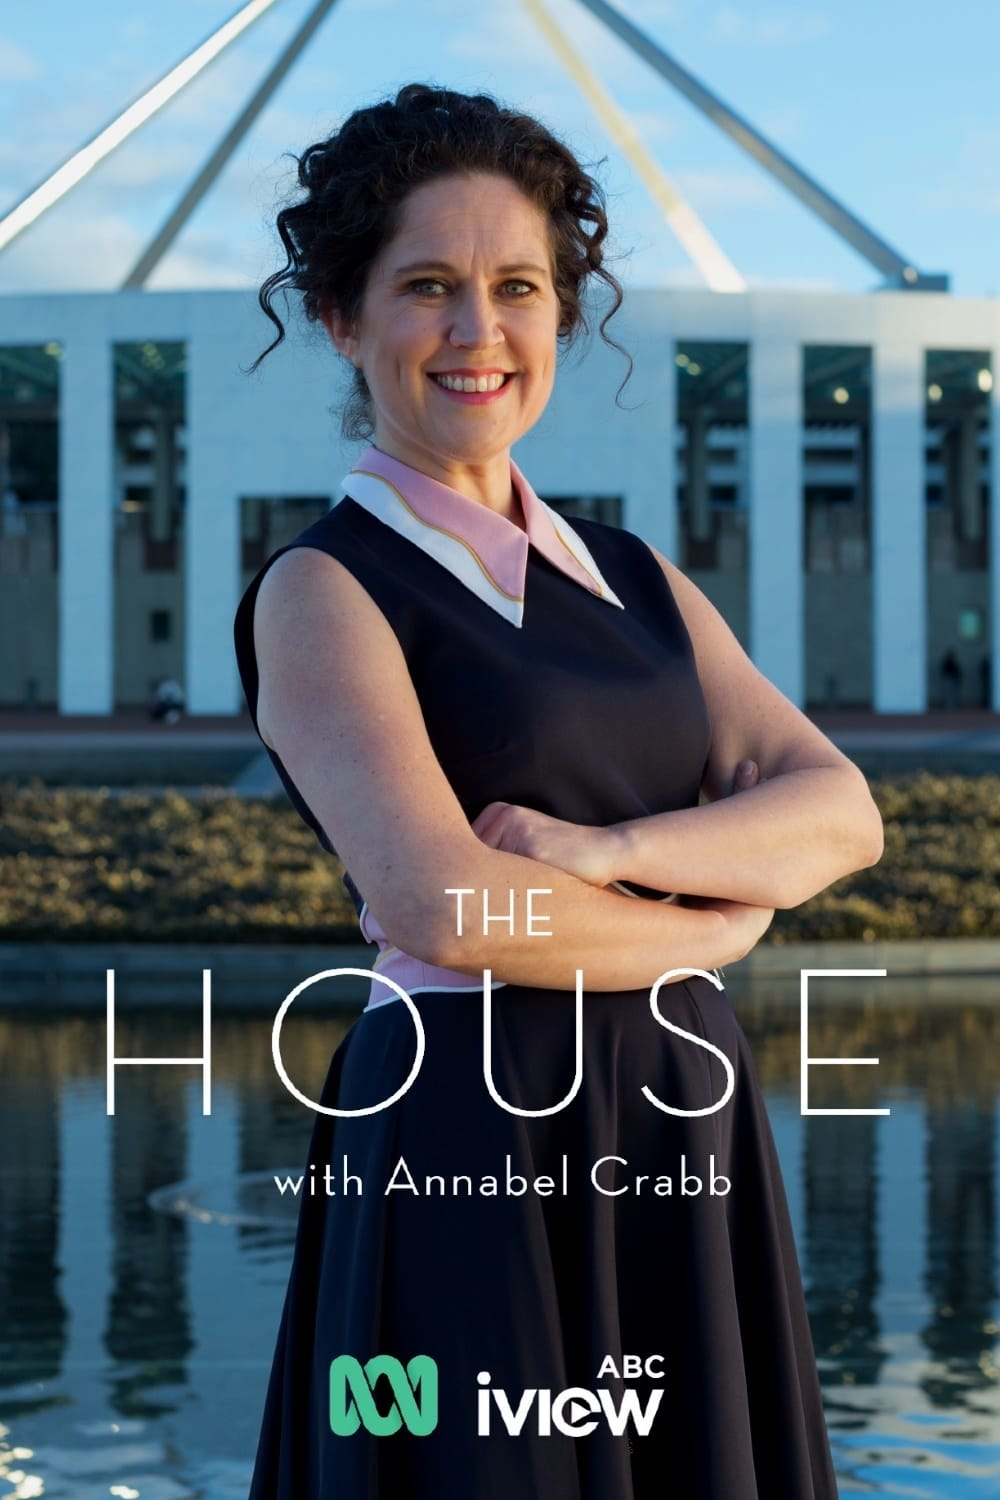 The House with Annabel Crabb (2017)